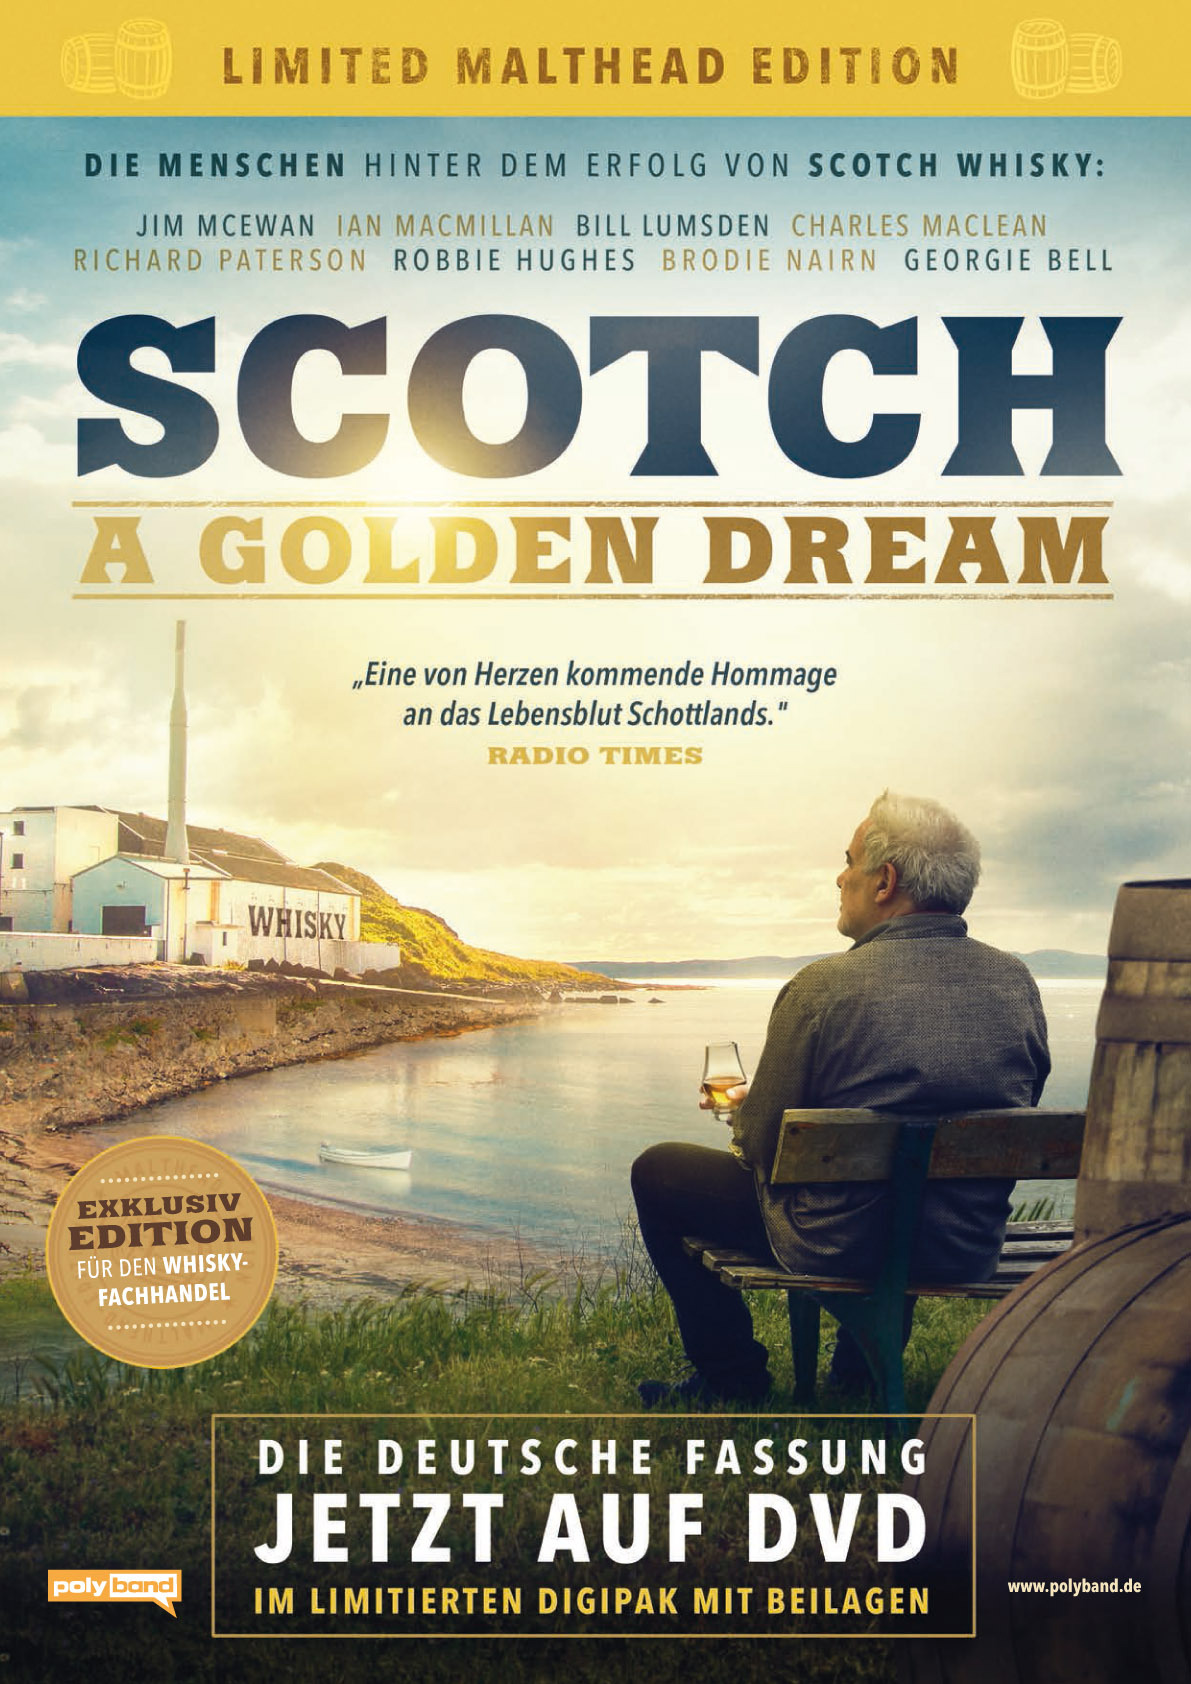 SCOTCH - A GOLDEN DREAM